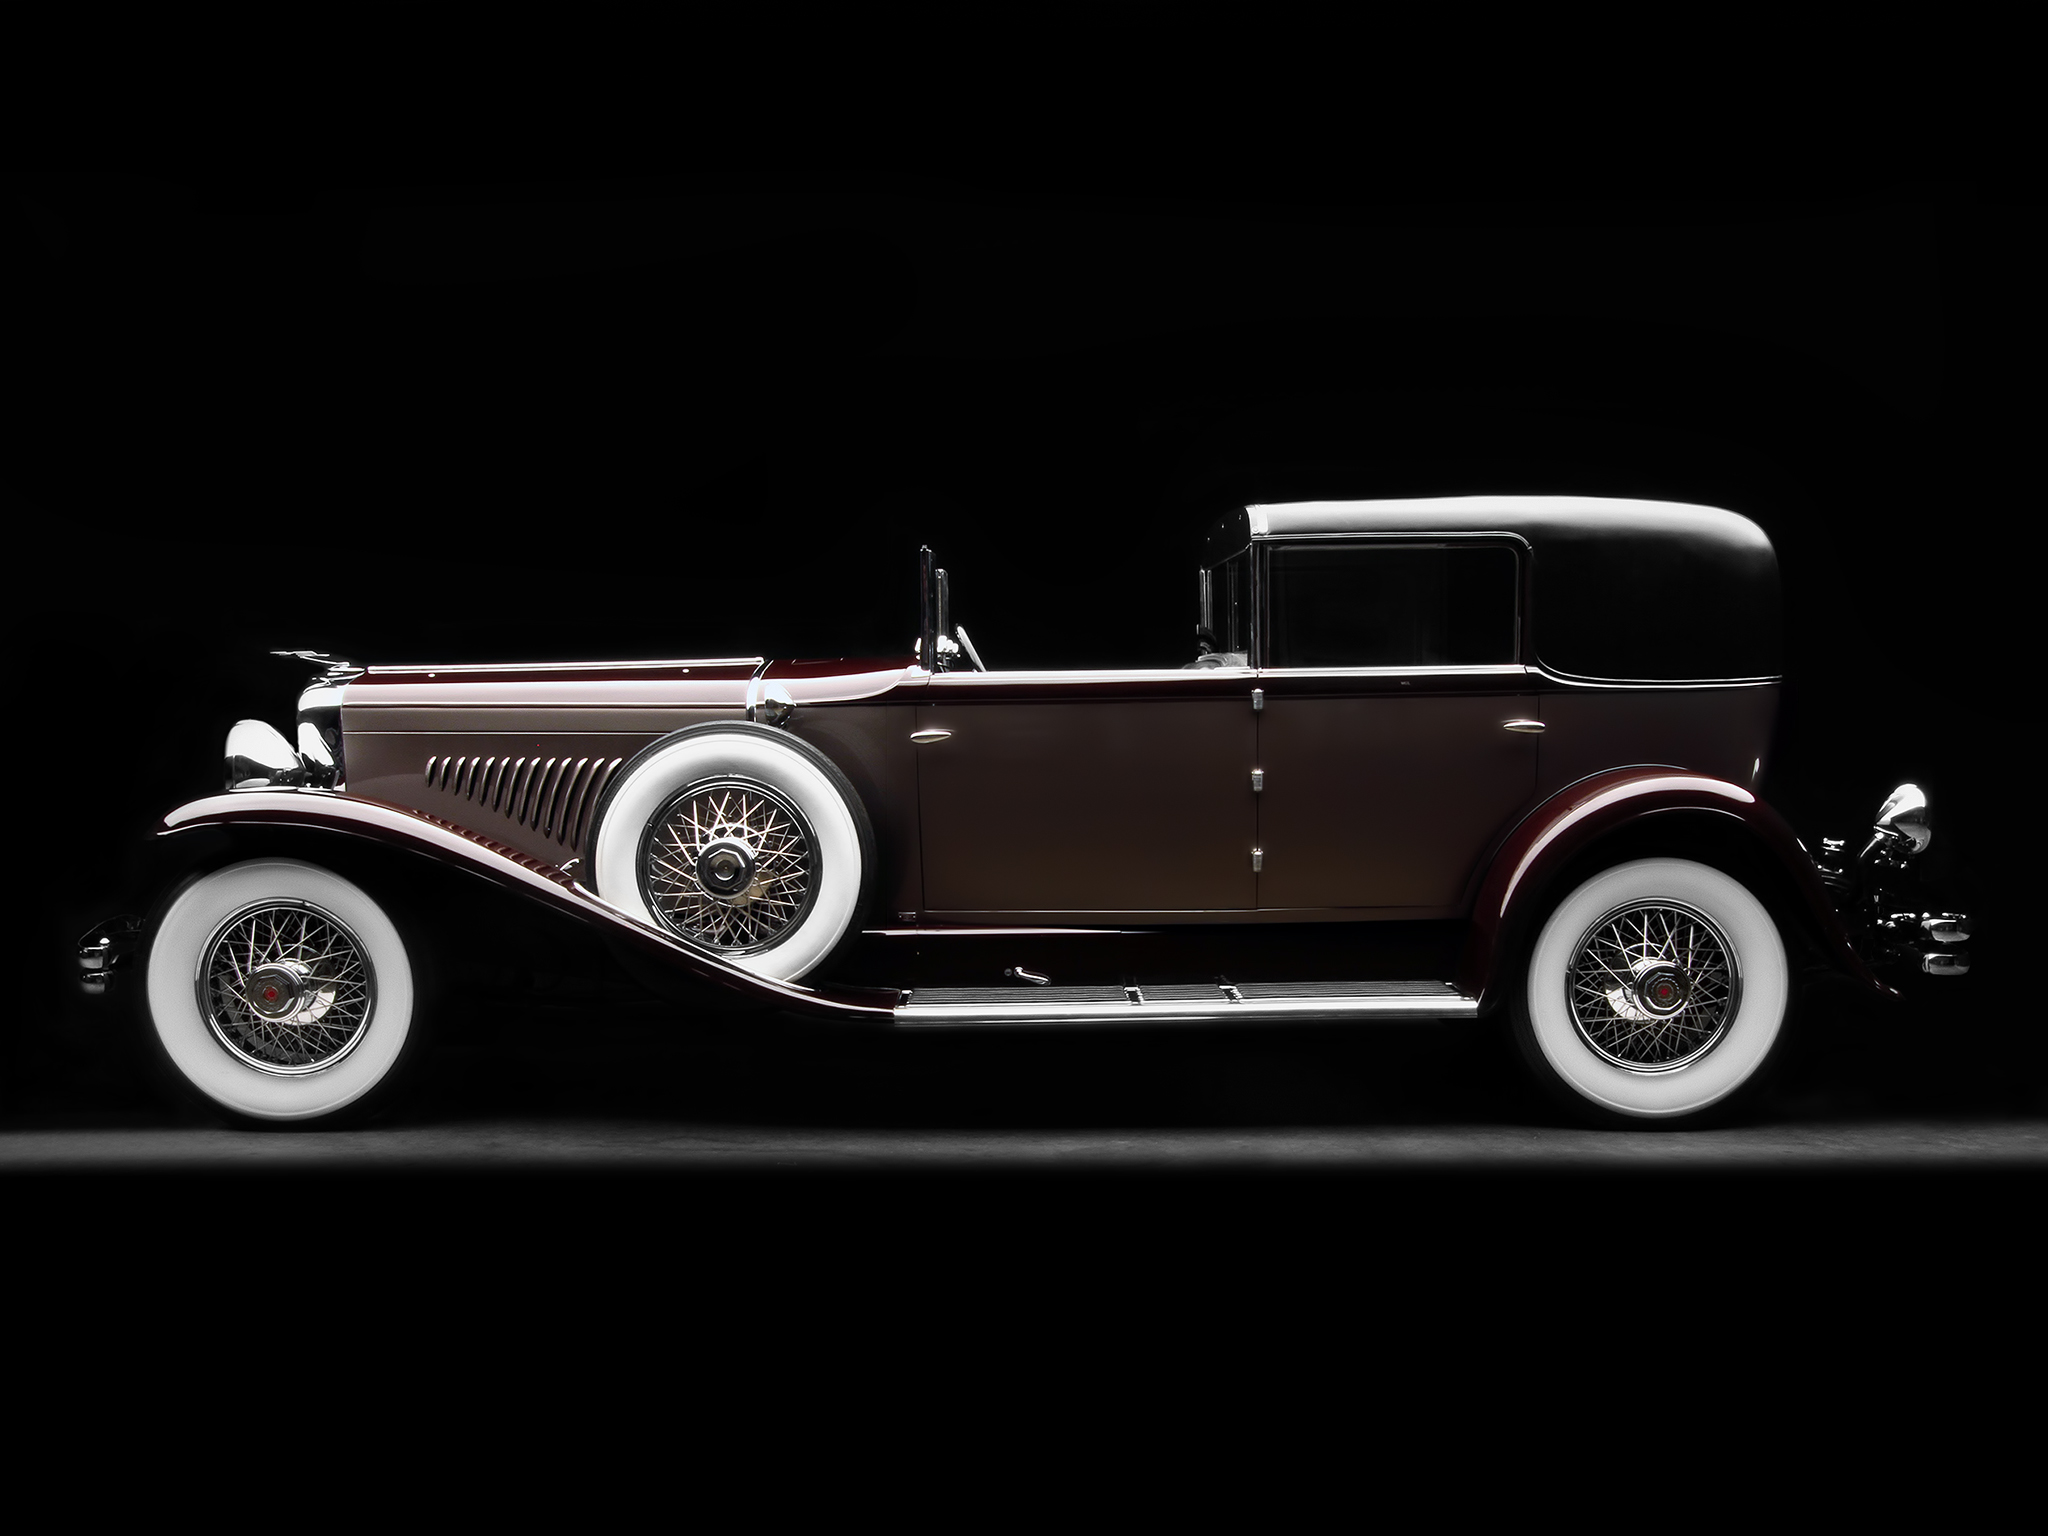 duesenberg vintage car wallpapers - photo #26